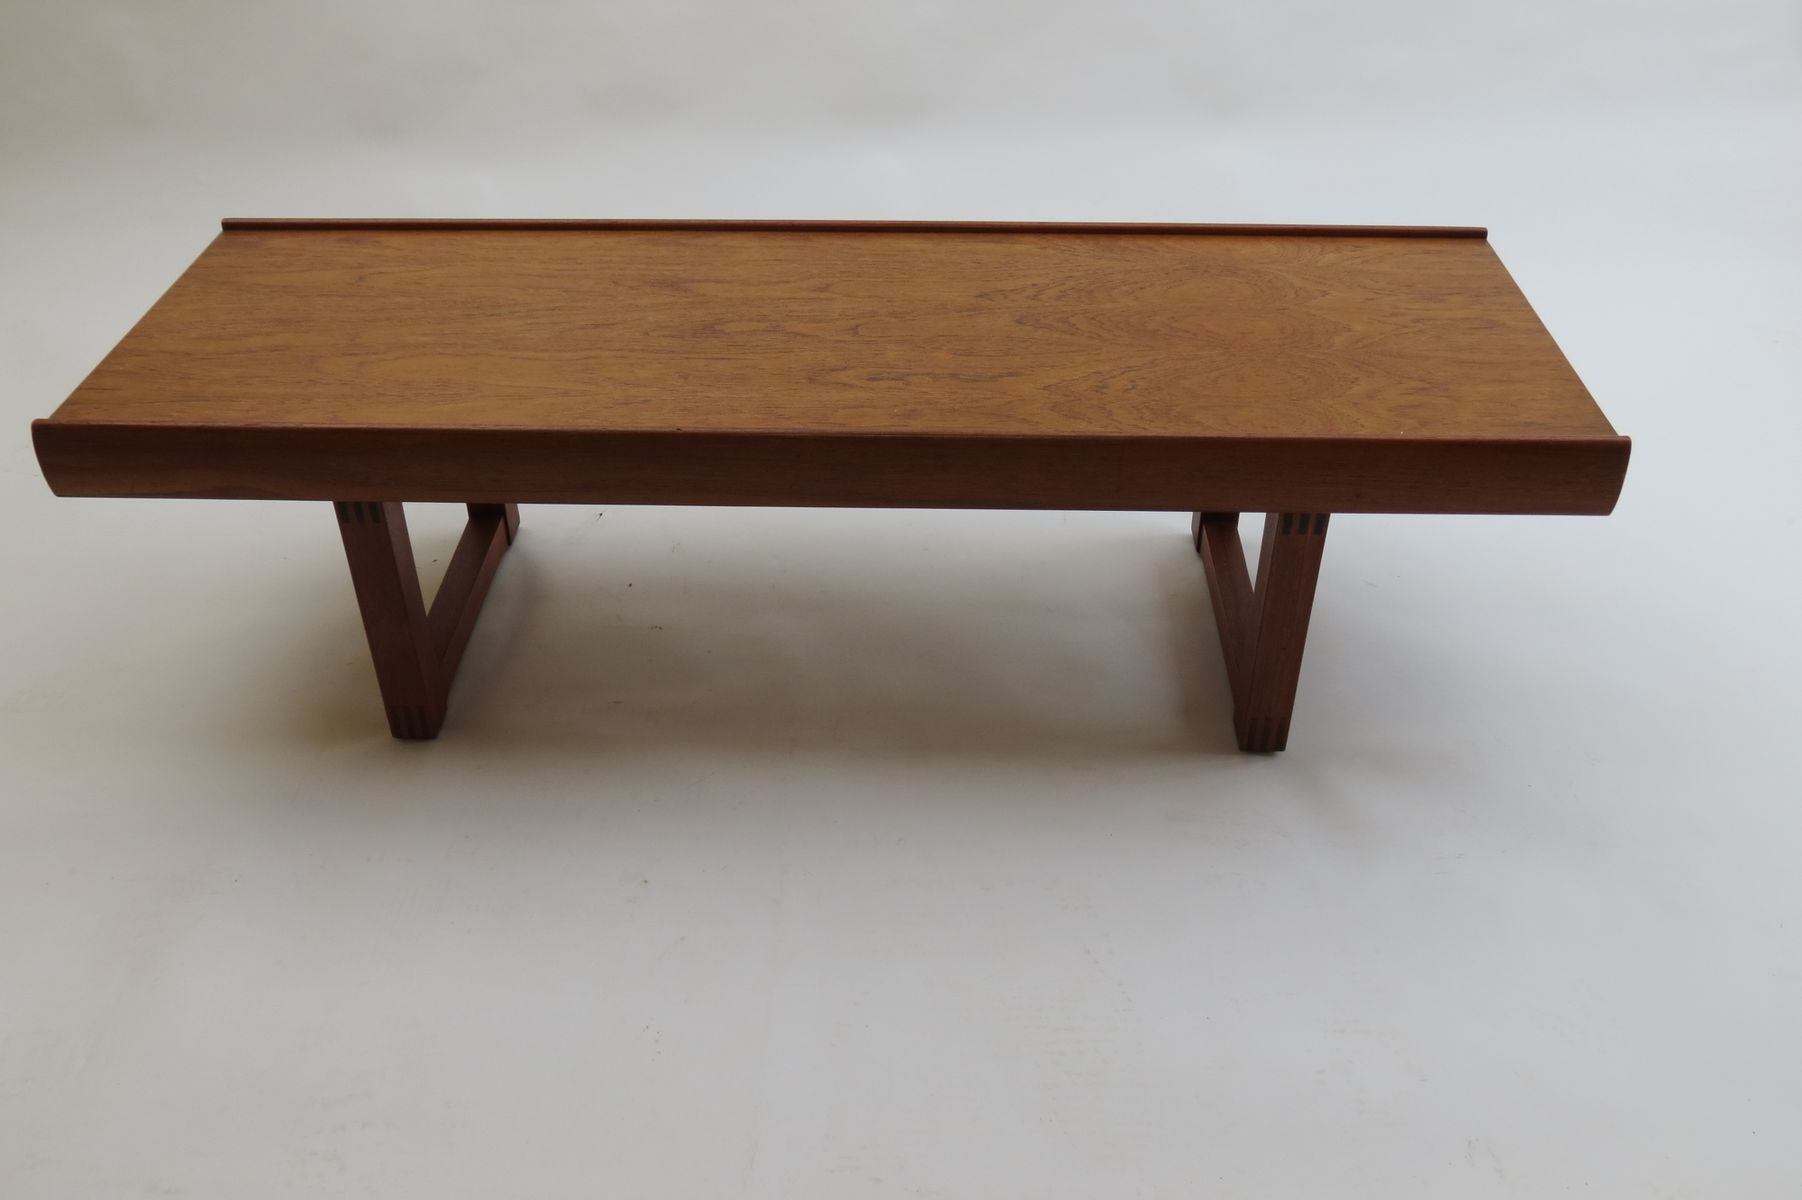 Norwegian Bruksbo Teak Coffee Table by Torbjrn Afdal for